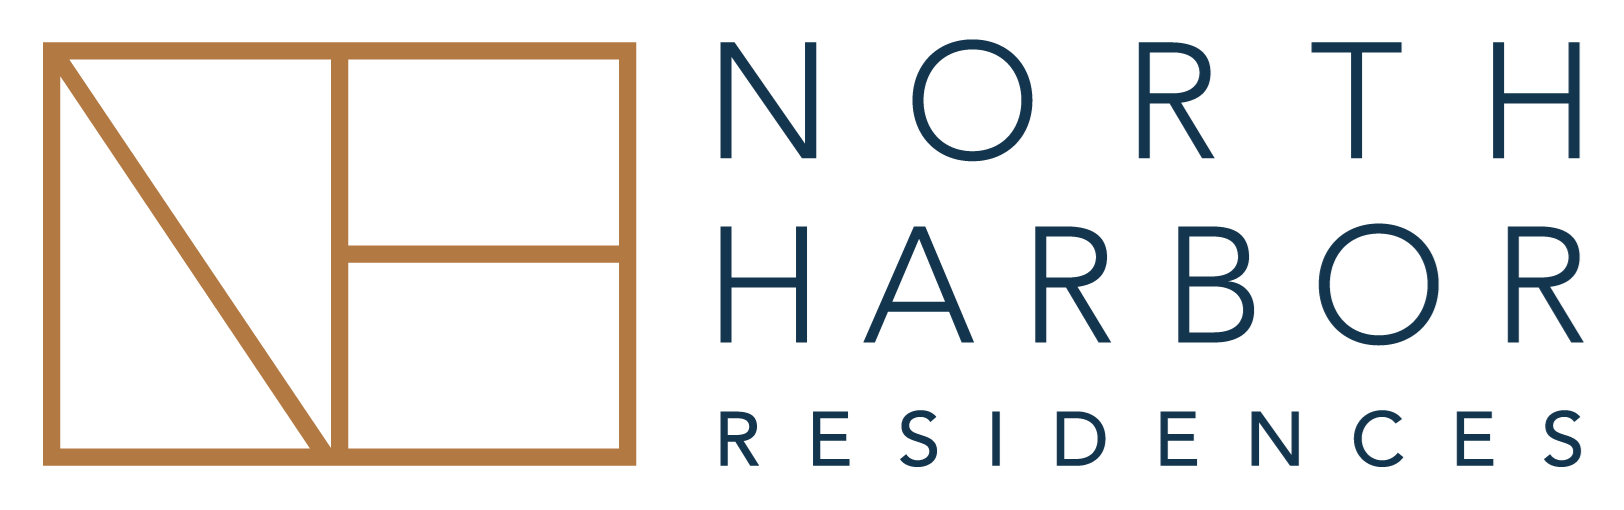 North Harbor Residences